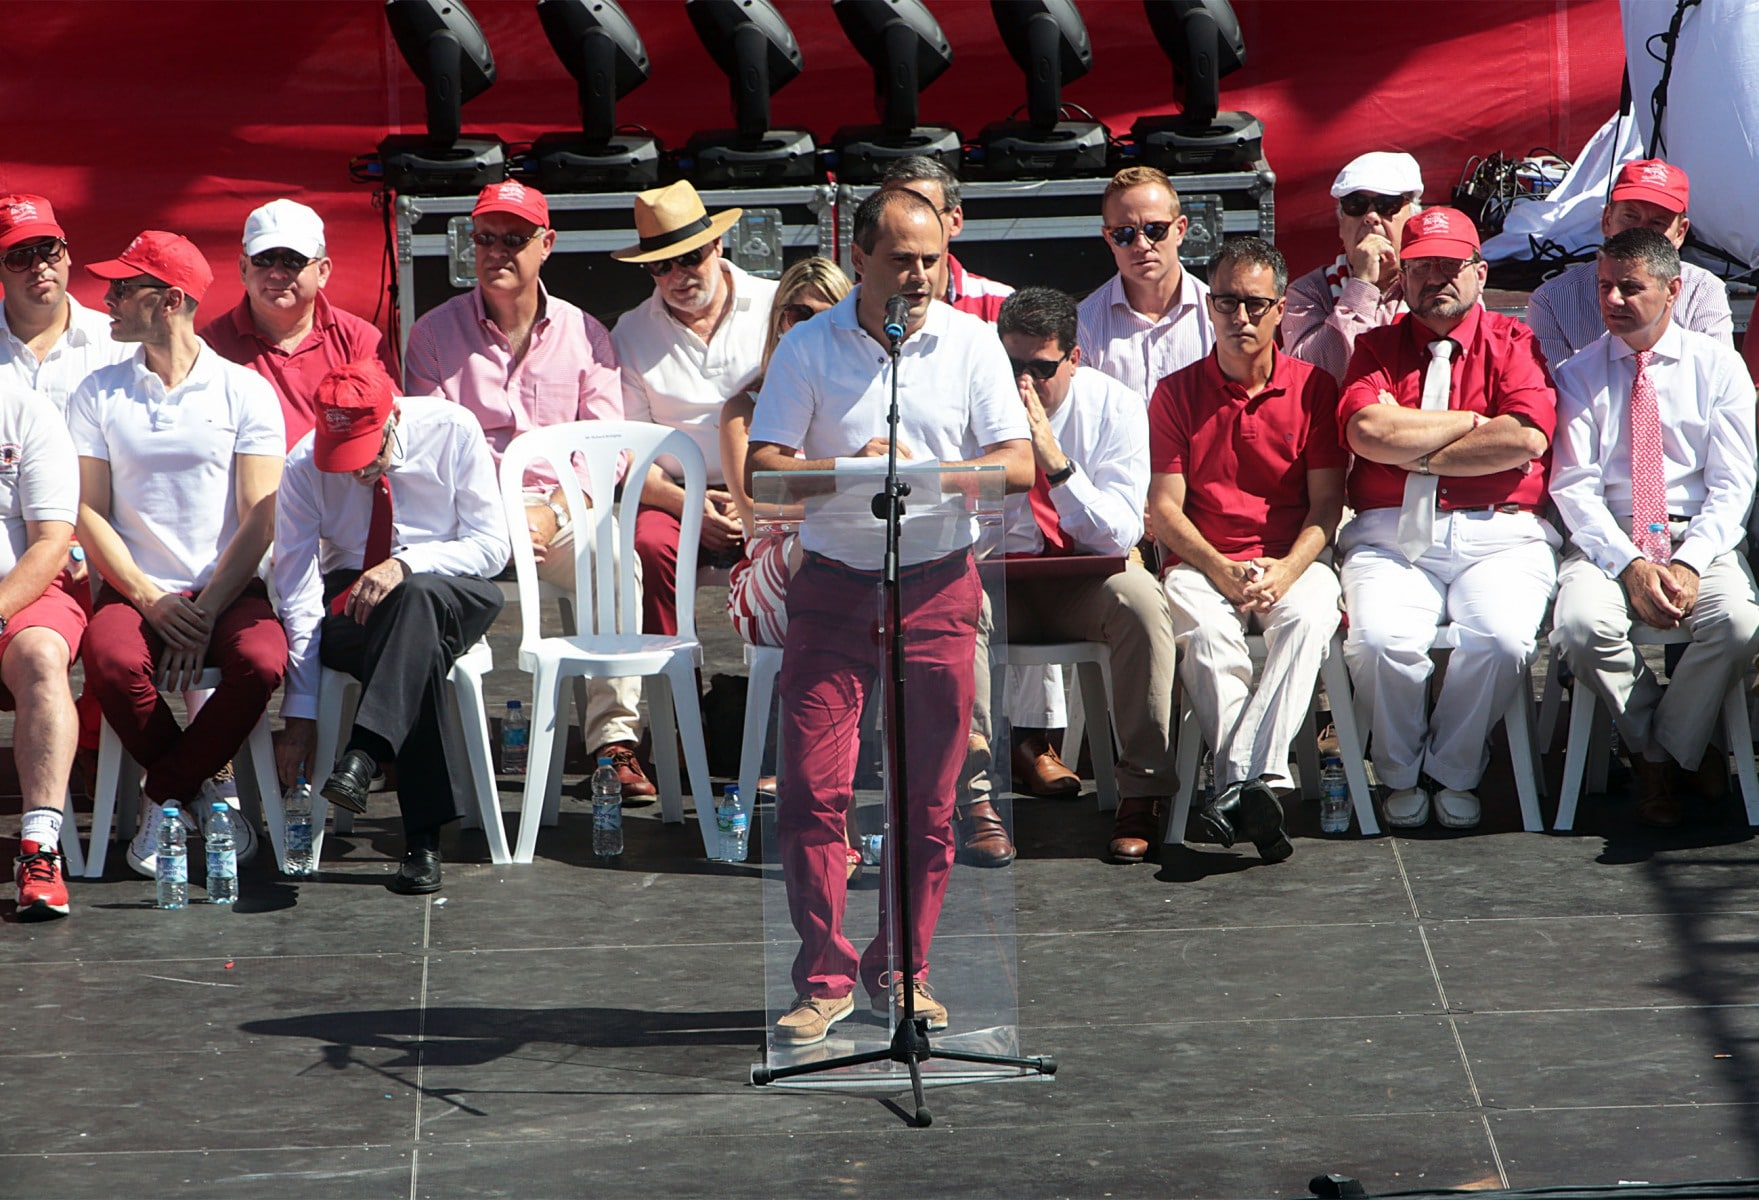 160910-national-day-gibraltar-2016-31_29605144375_o